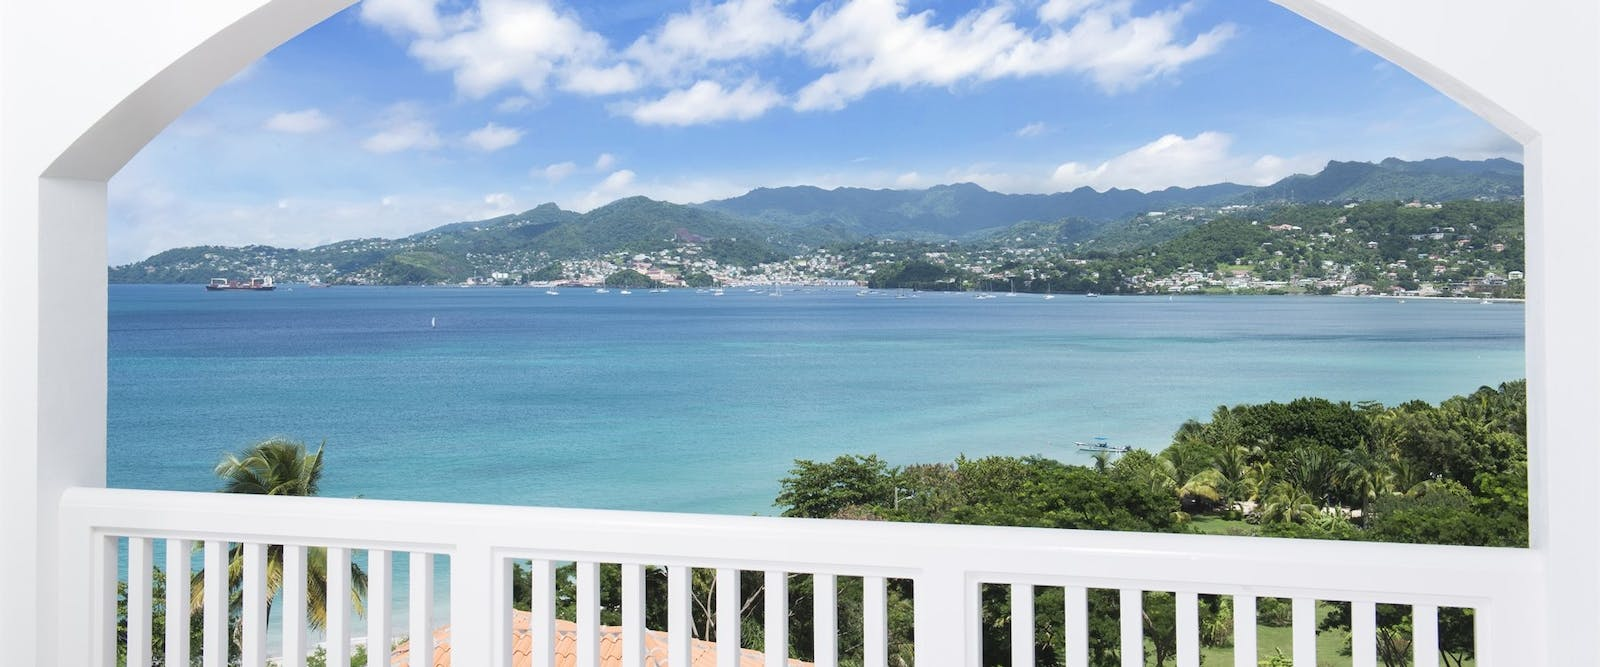 View from Patio at Mount Cinnamon, Grenada